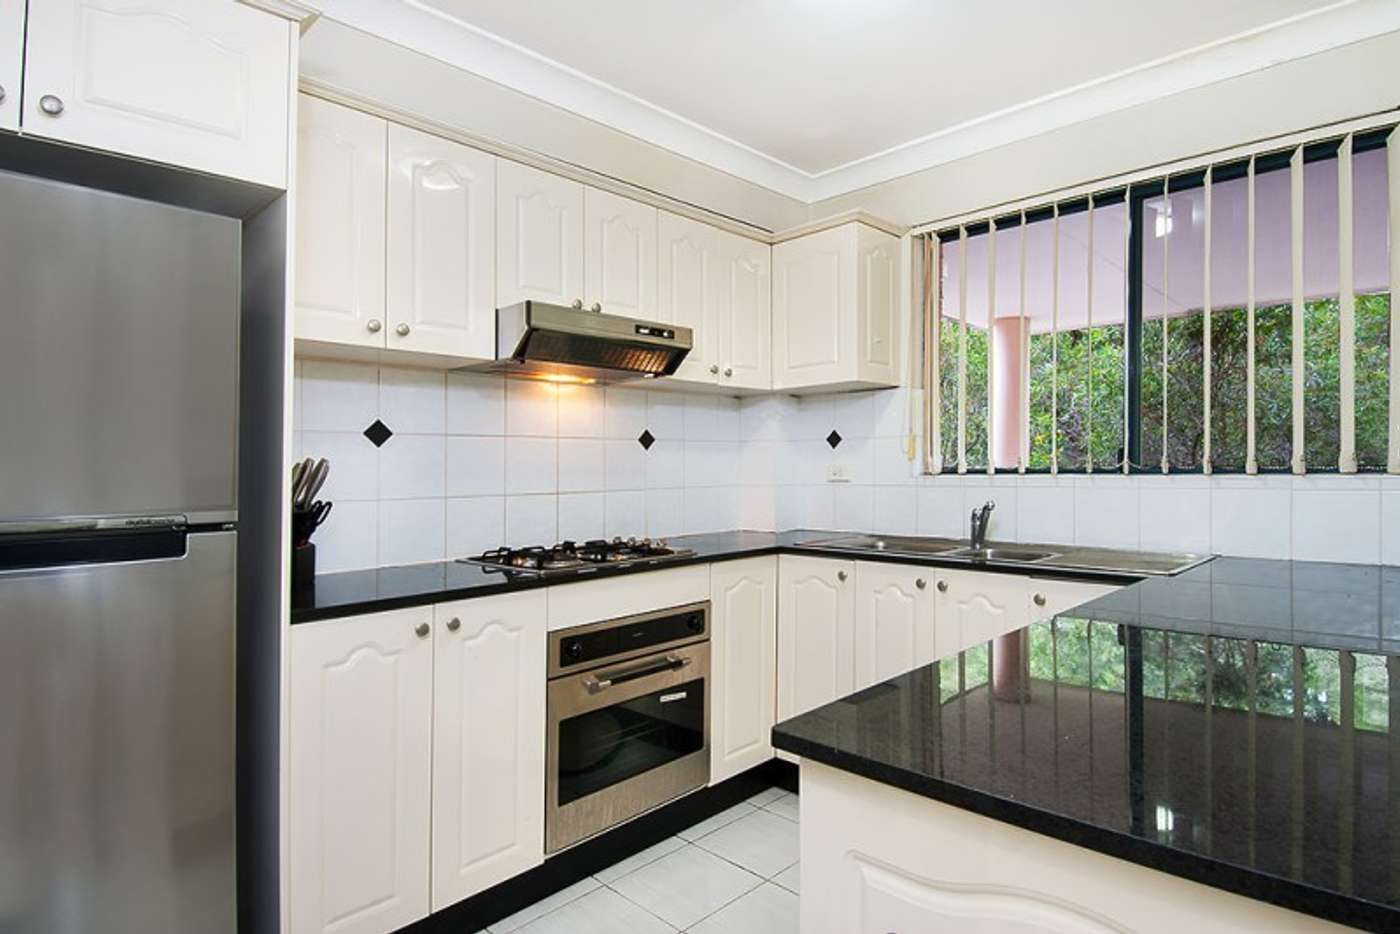 Fifth view of Homely apartment listing, 14/17-19 Henley Road, Homebush West NSW 2140